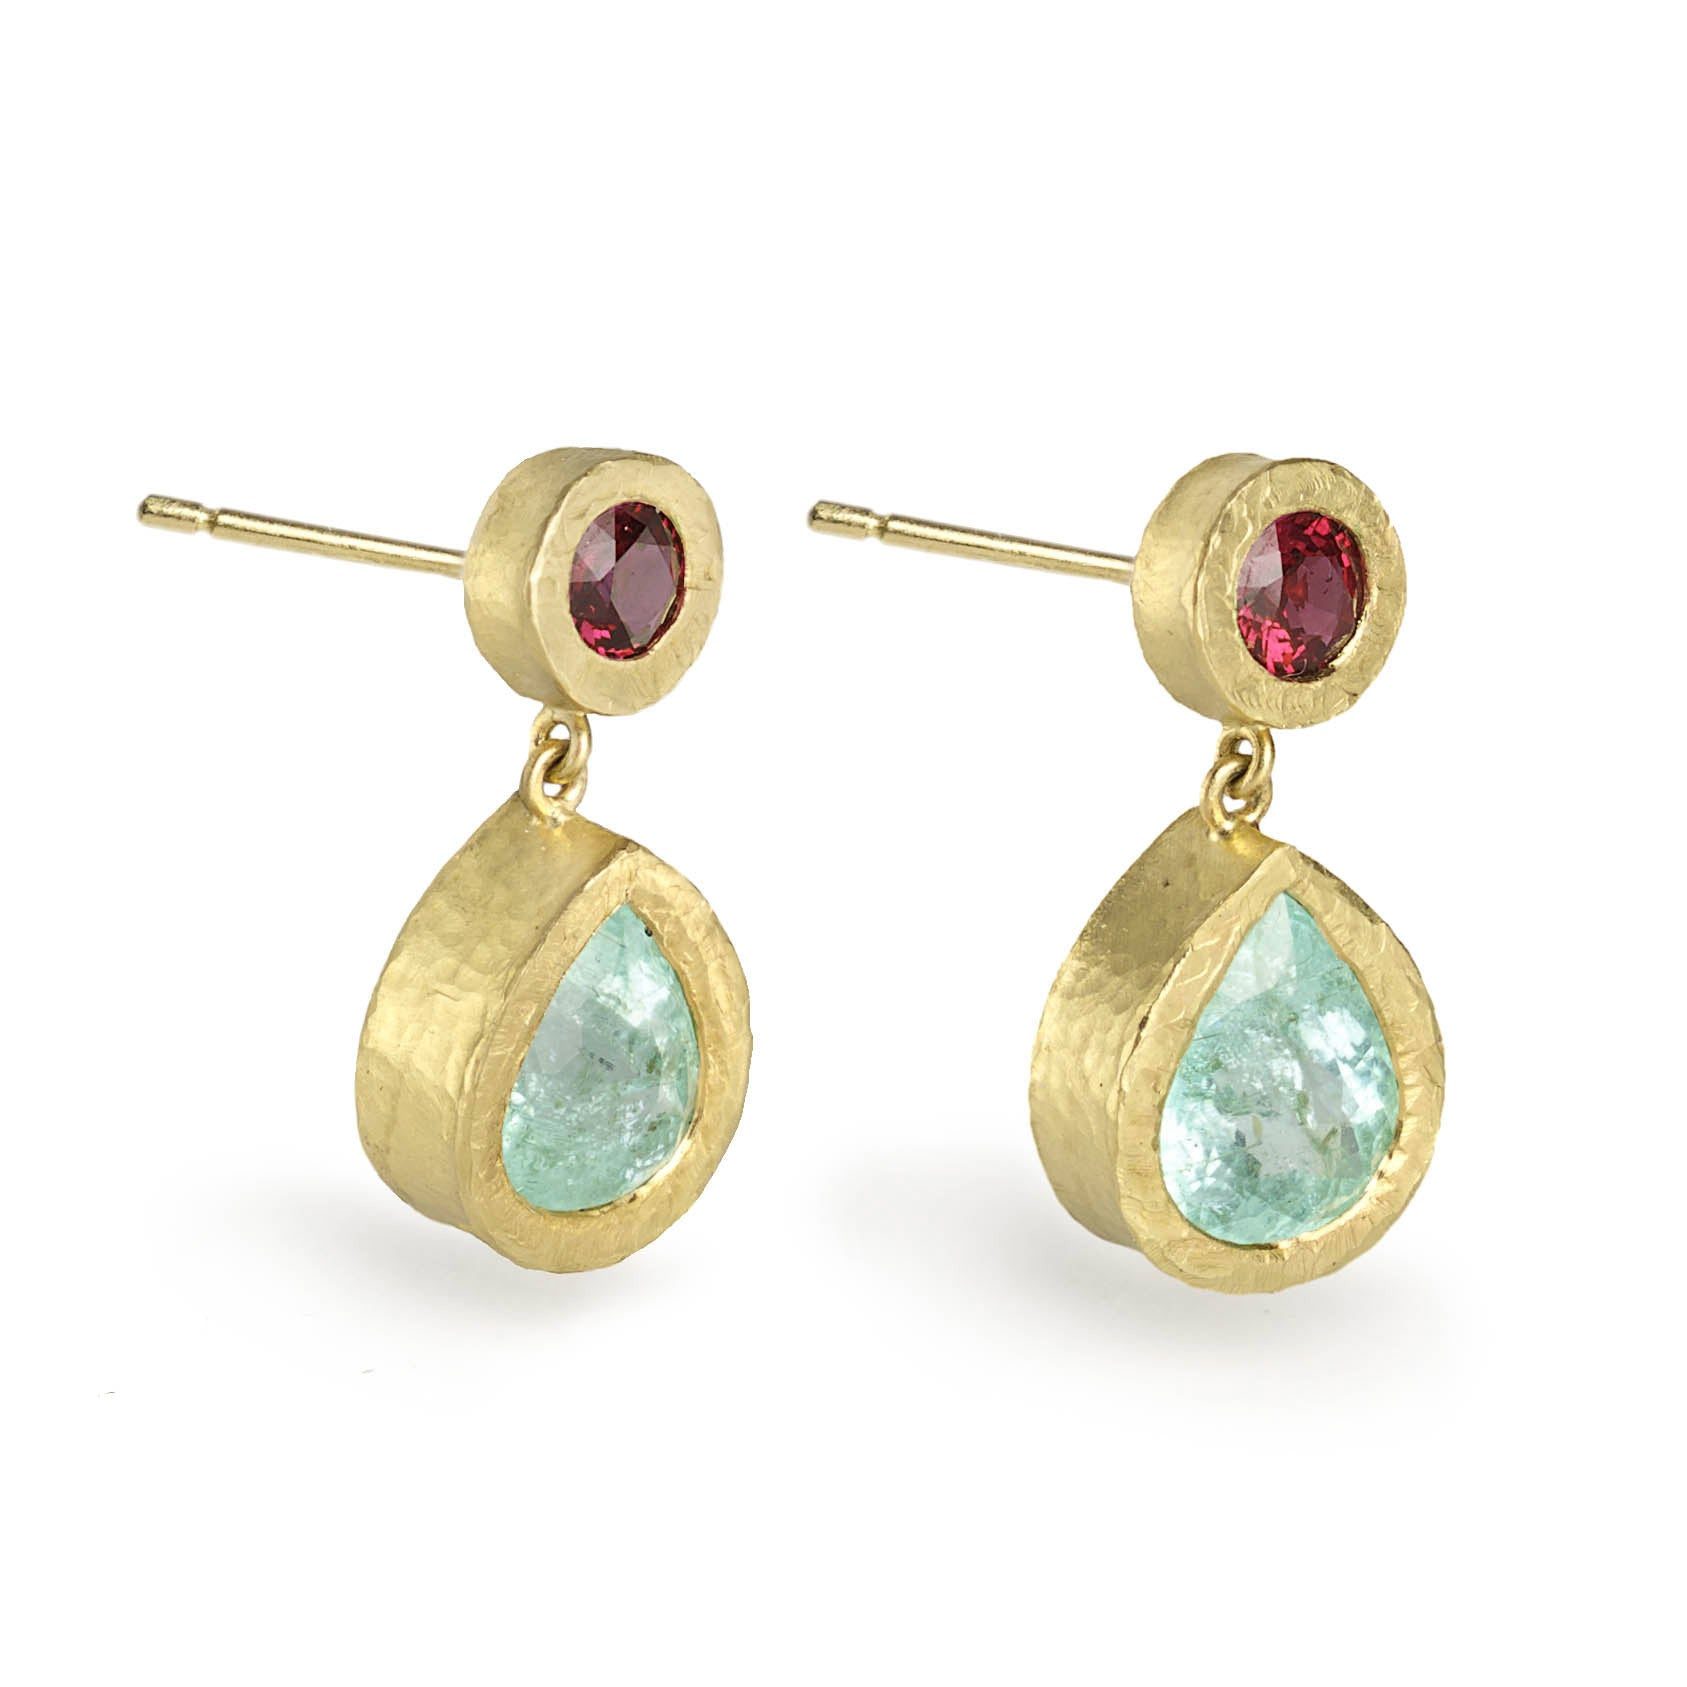 Paraiba Tourmaline & Ruby Drop Earrings